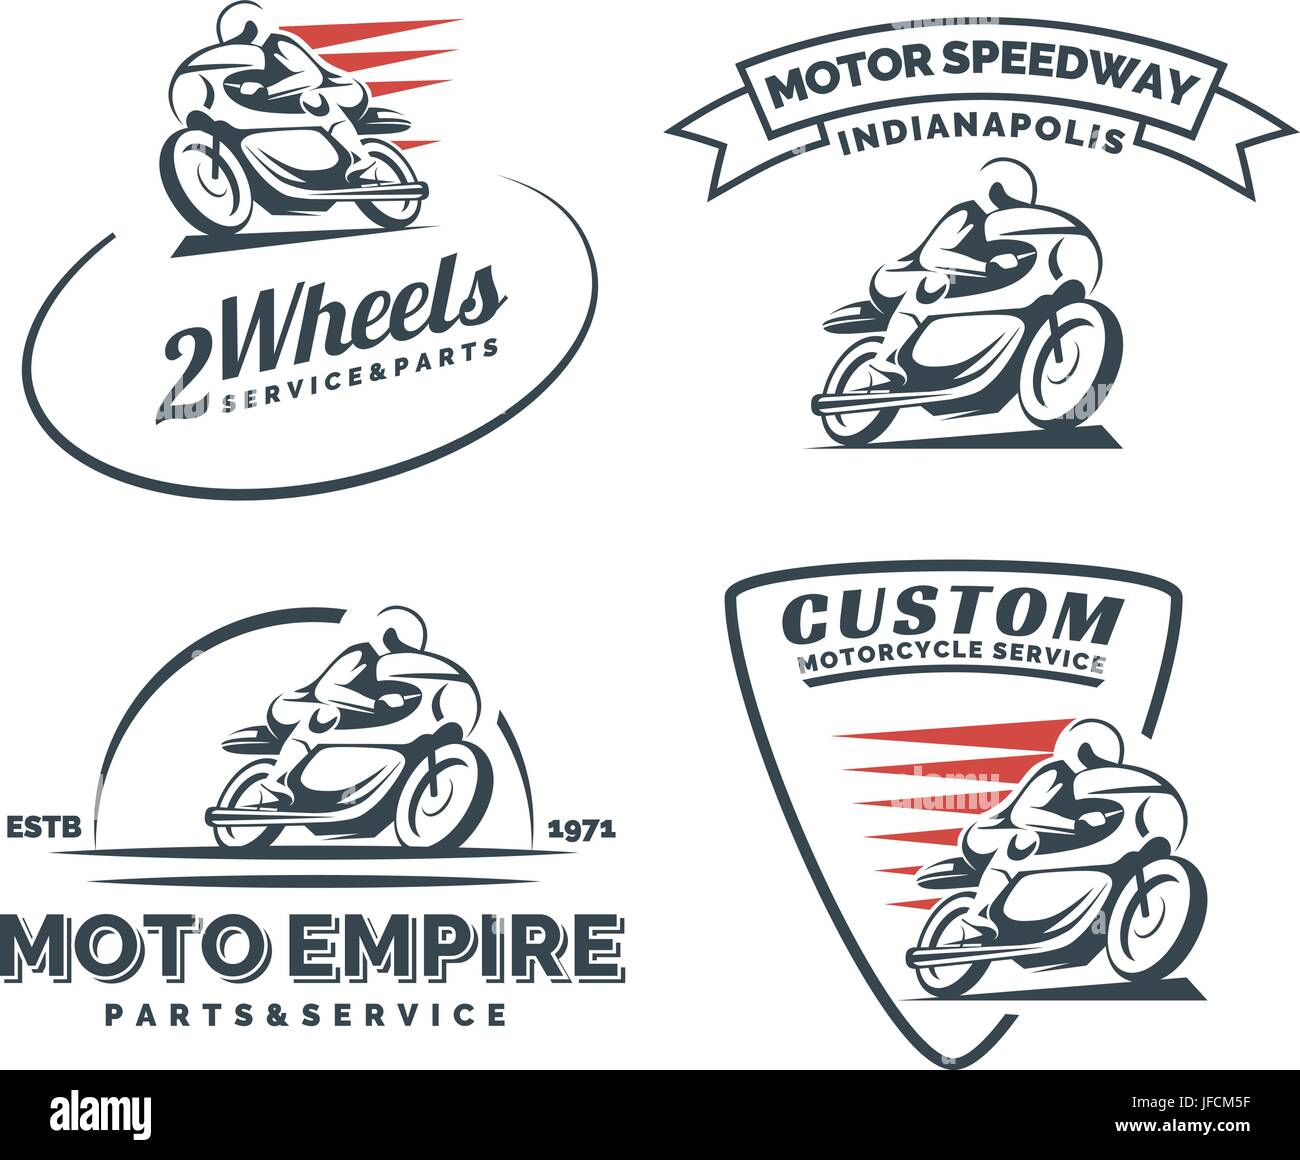 Vintage cafe racer motorcycle logo, badges and emblems isolated on white  background. Motorcycle restoration, service and parts. Classic motorcycle  t-s